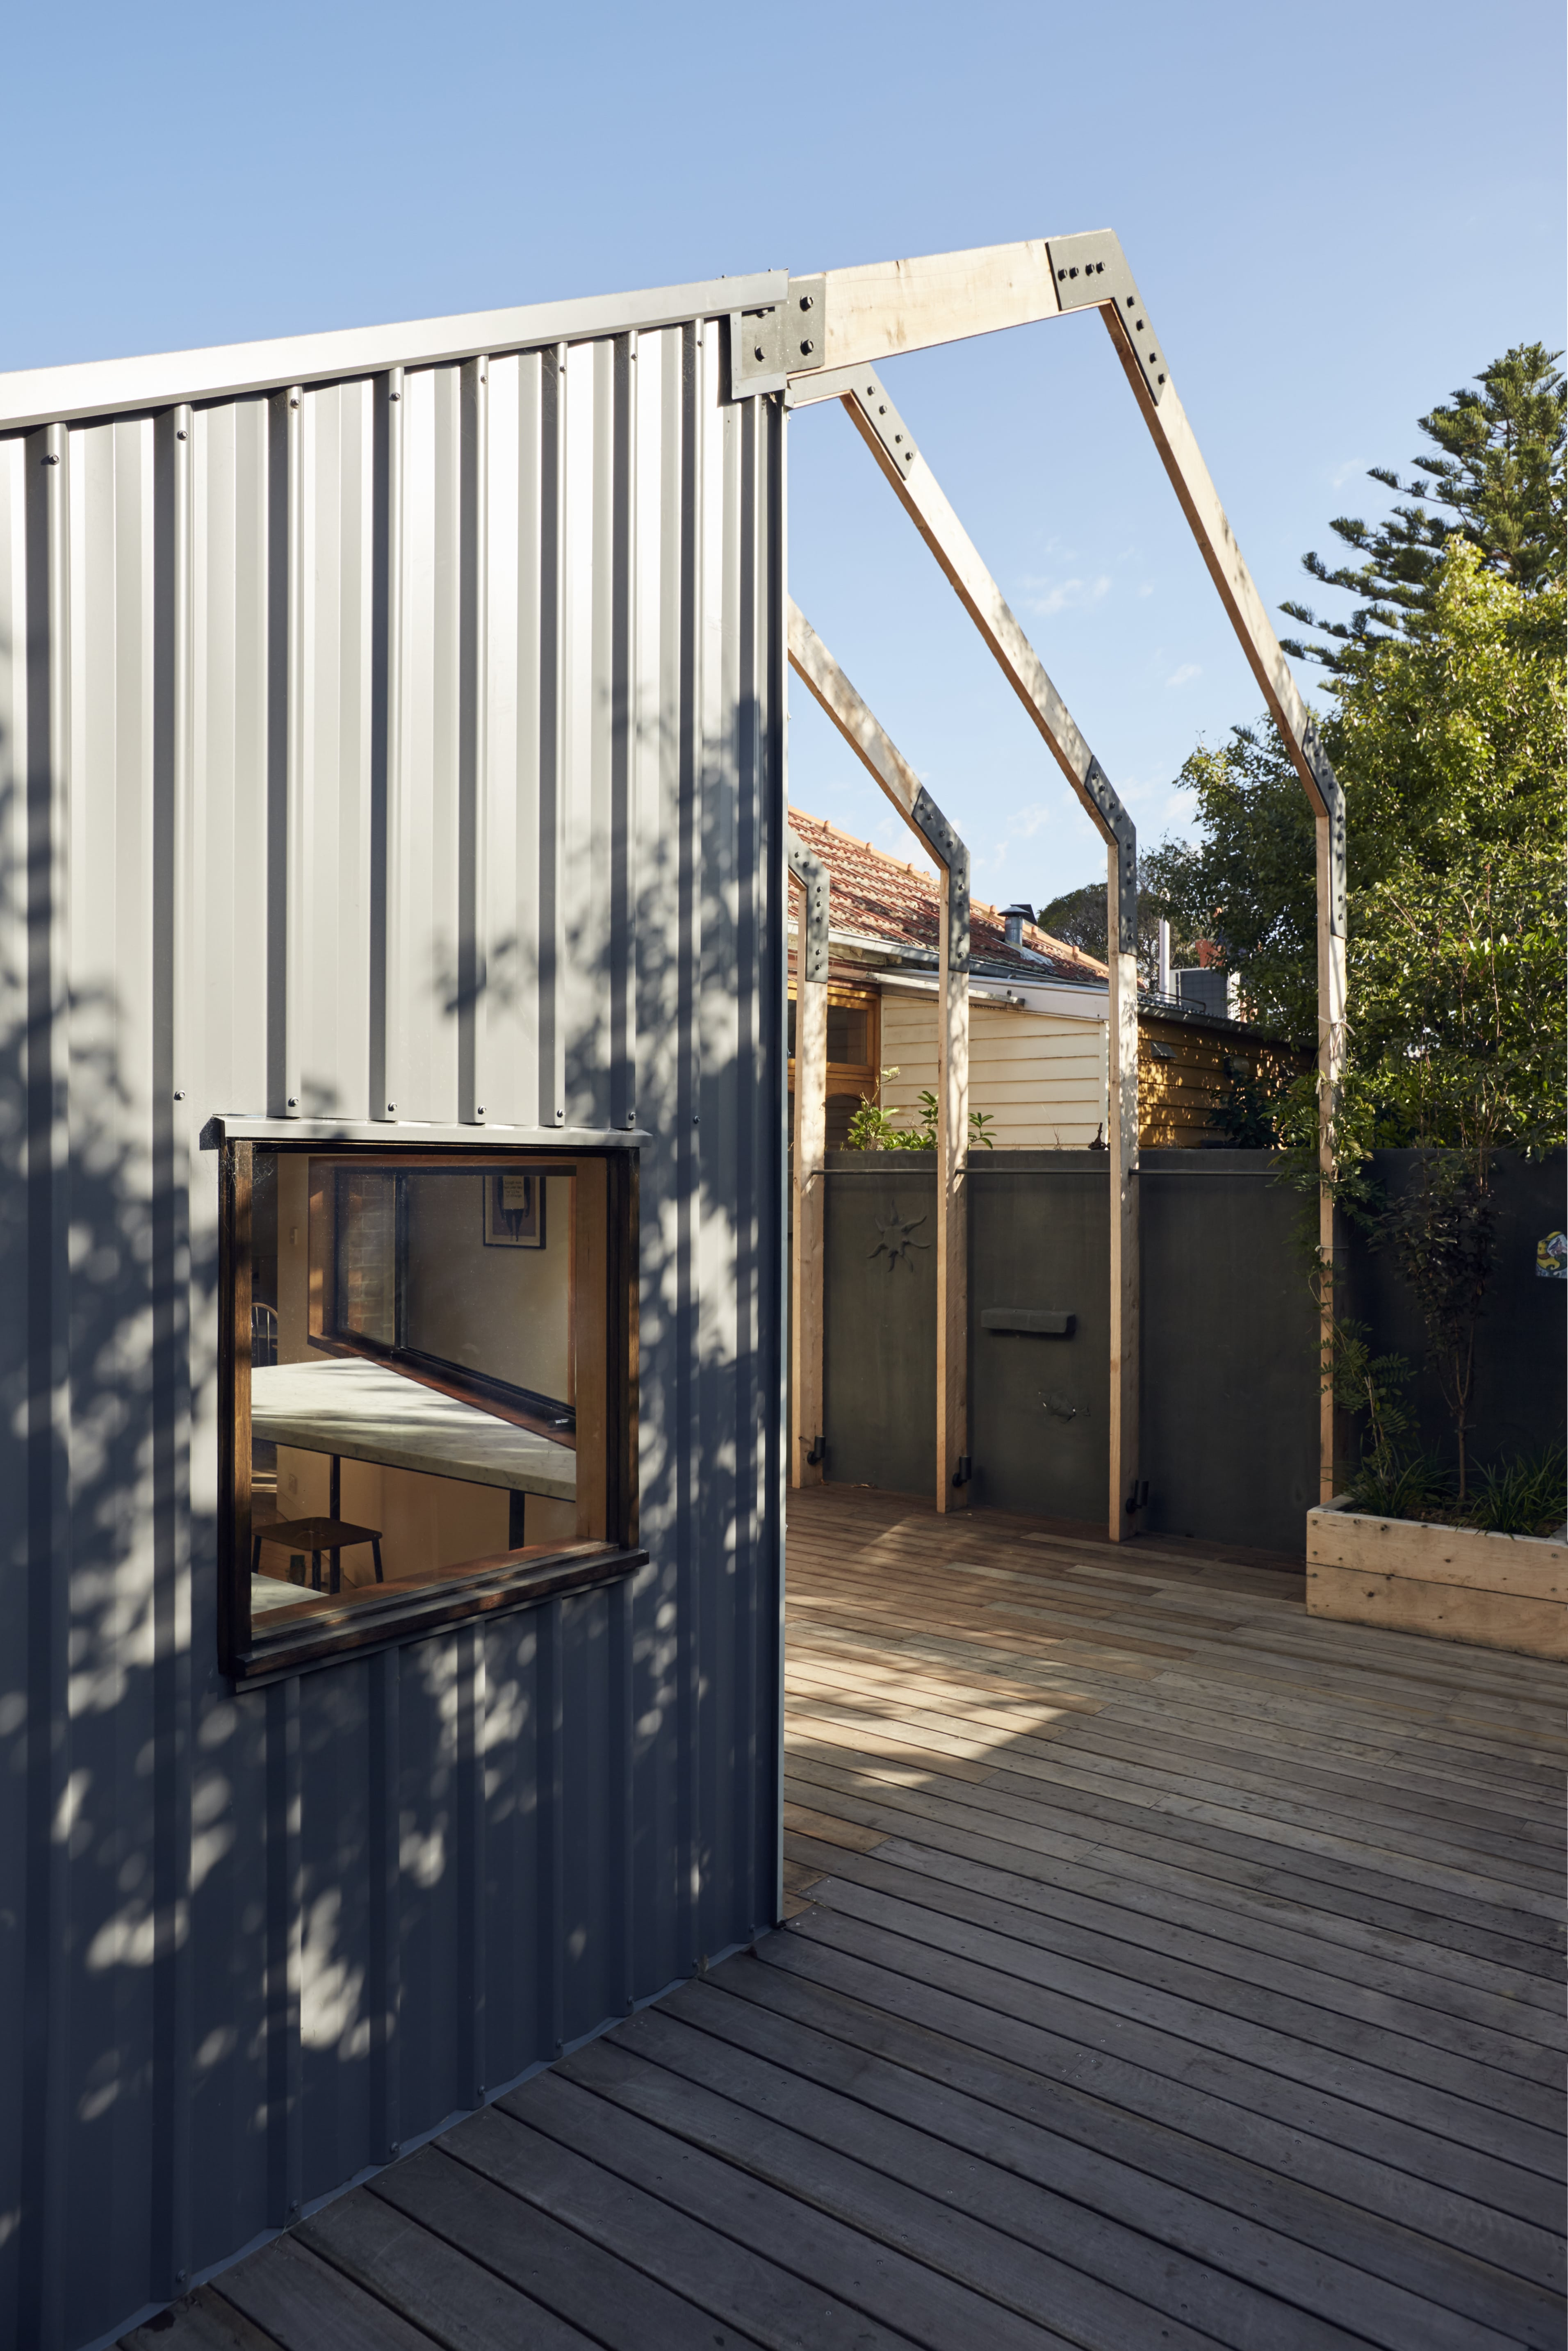 Gallery Of St Kilda East House By Claire Scorpo Local Australian Architecture & Design Melbourne Image 3